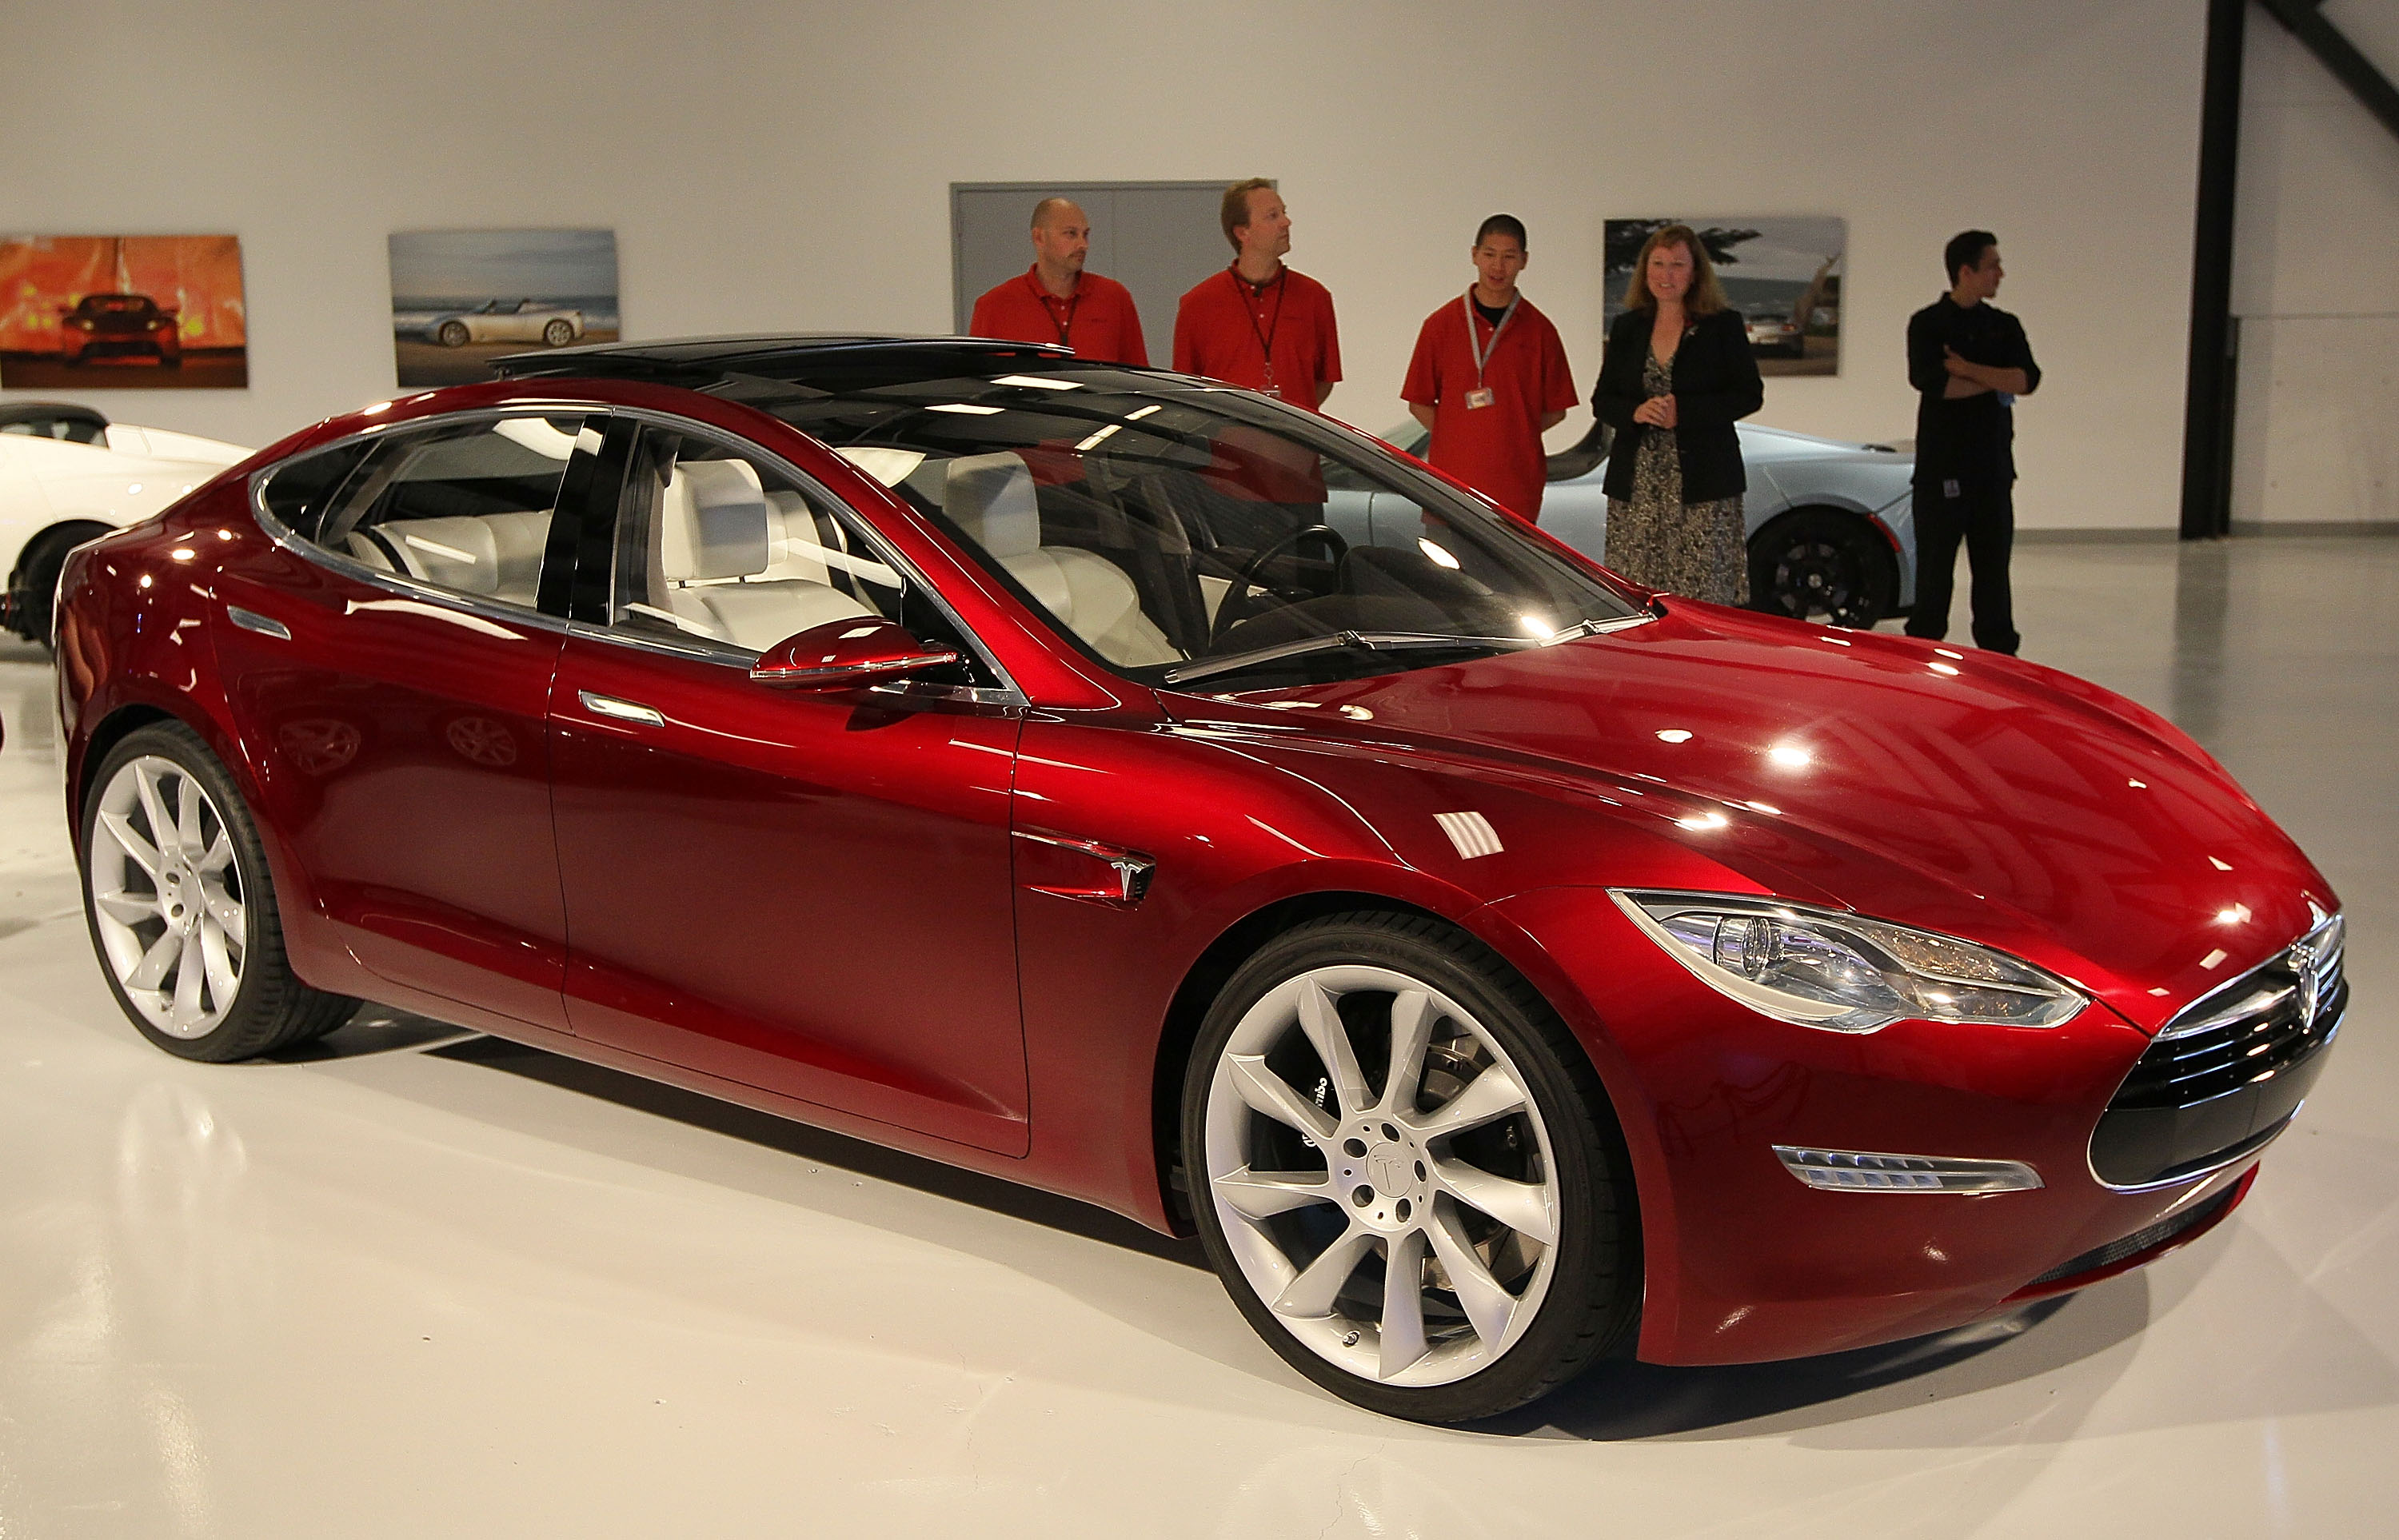 Tesla Reveals China Pricing For Model S With Minimal Markup Admits It Could Charge More